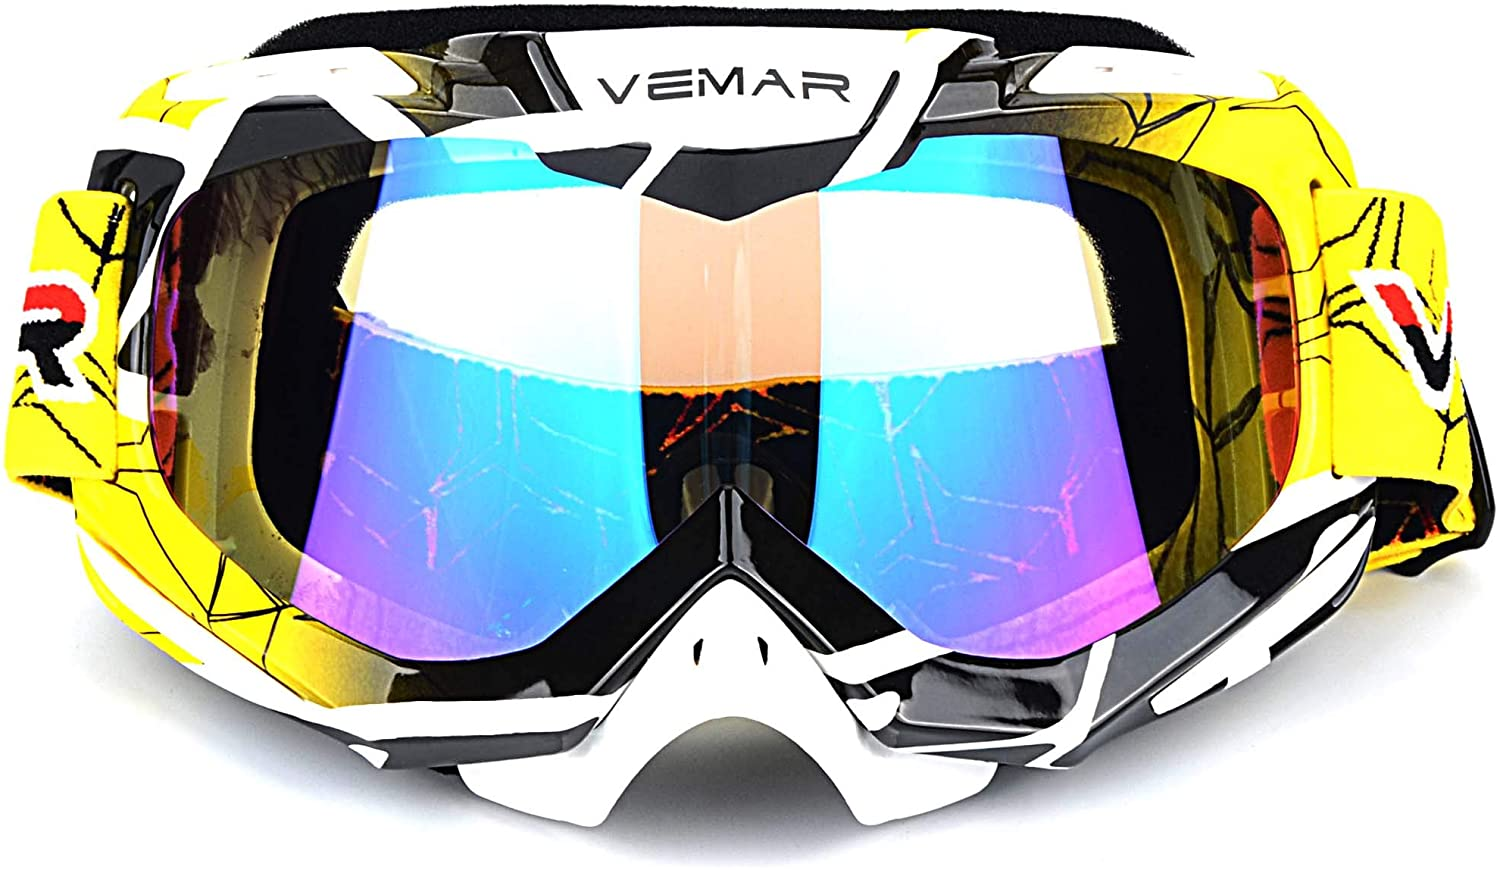 Polarized Sport Motorcycle Motocross Goggles ATV Racing Goggles Dirt Bike Tactical Riding Motorbike Goggle Glasses, Bendable Windproof Dustproof Scratch Resistant Protective Safety Glasses (Yellow)